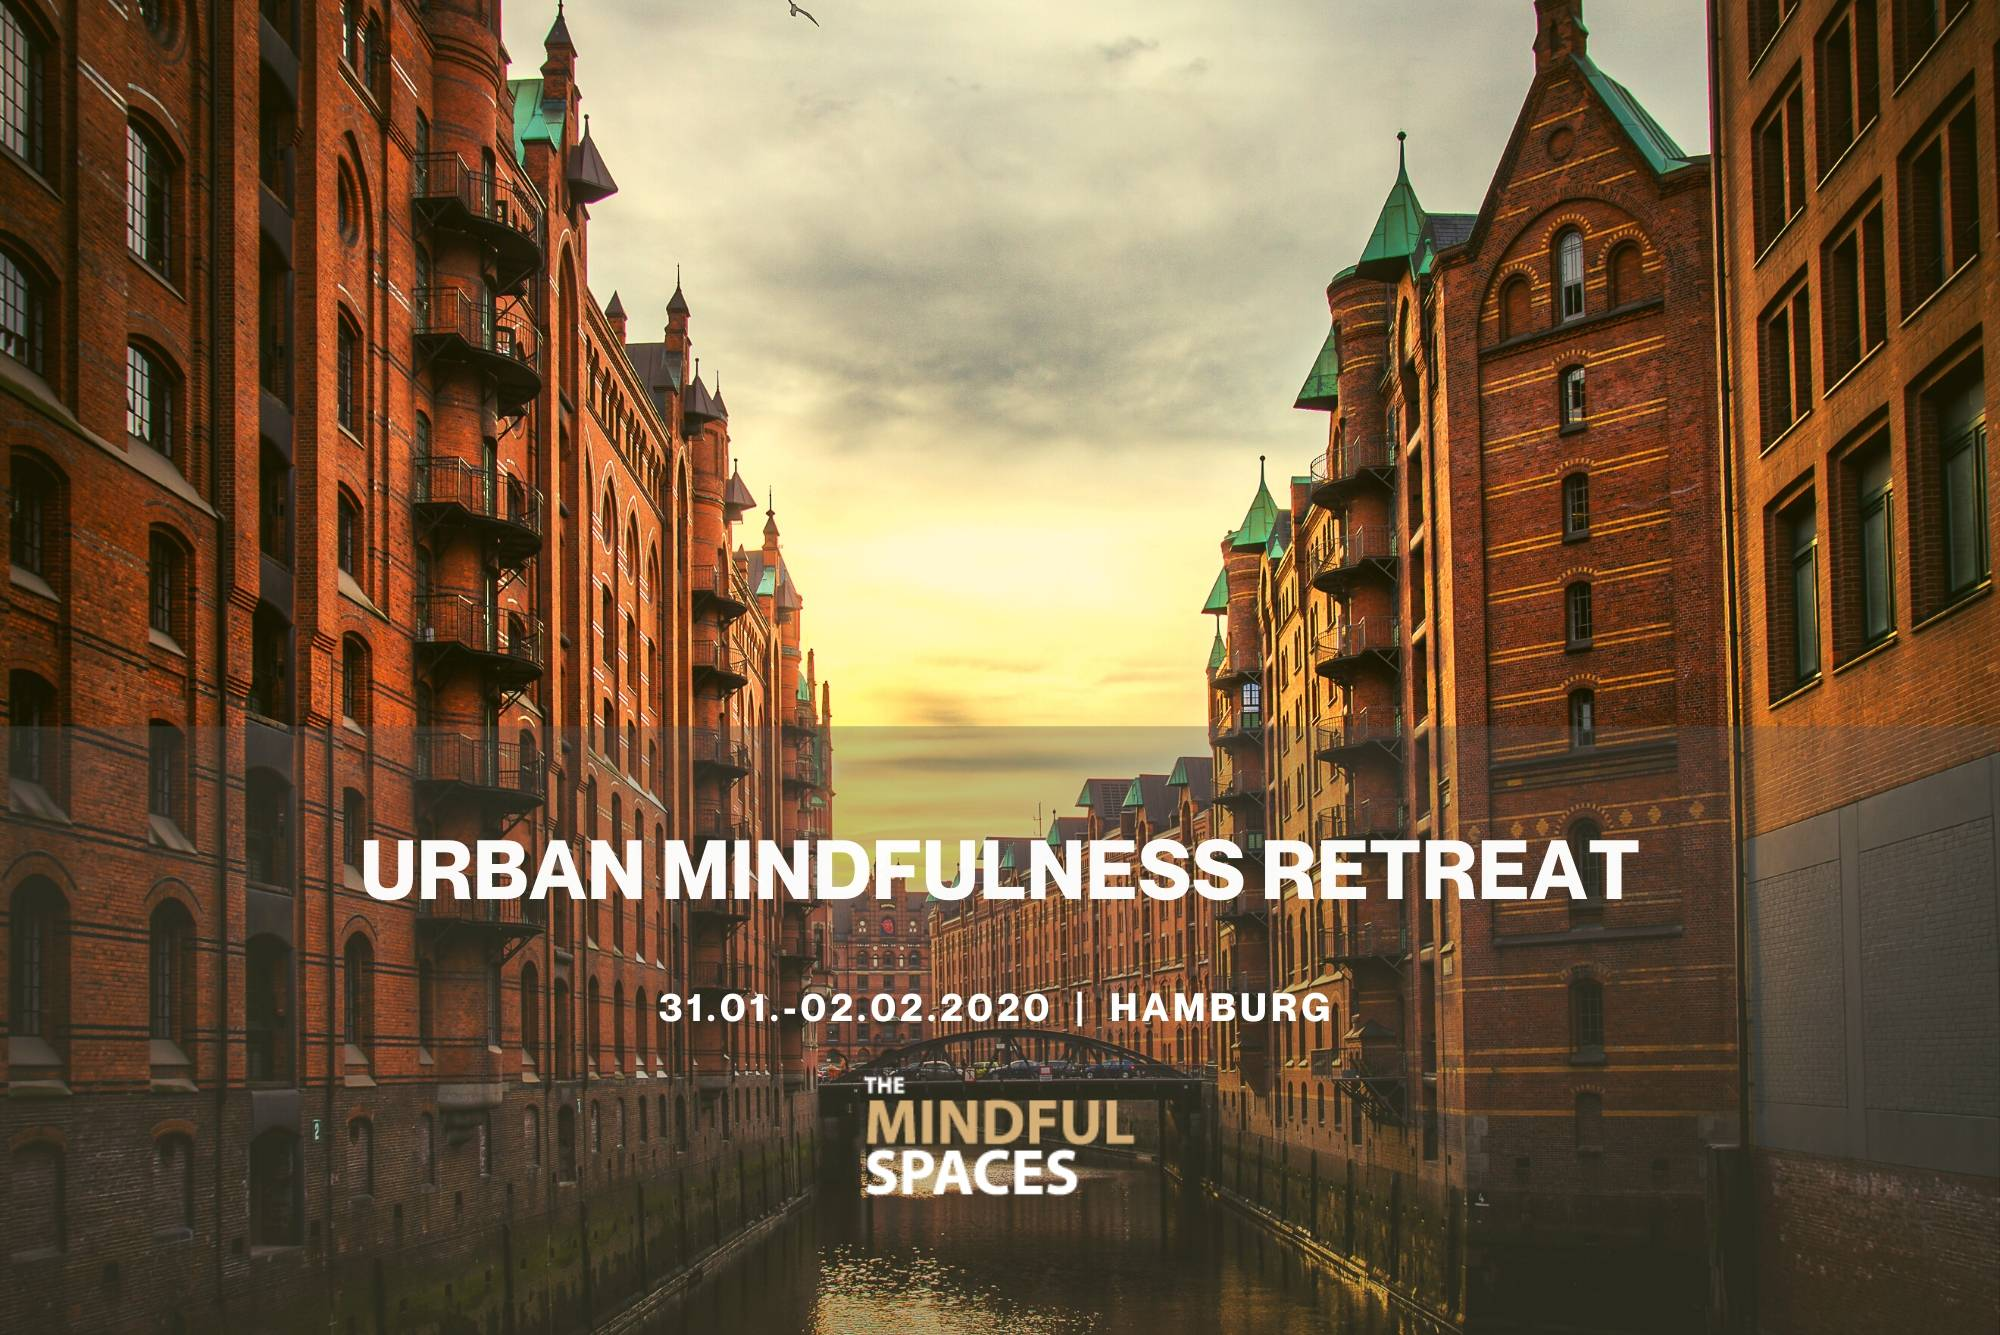 Urban Mindfulness Retreat Hamburg